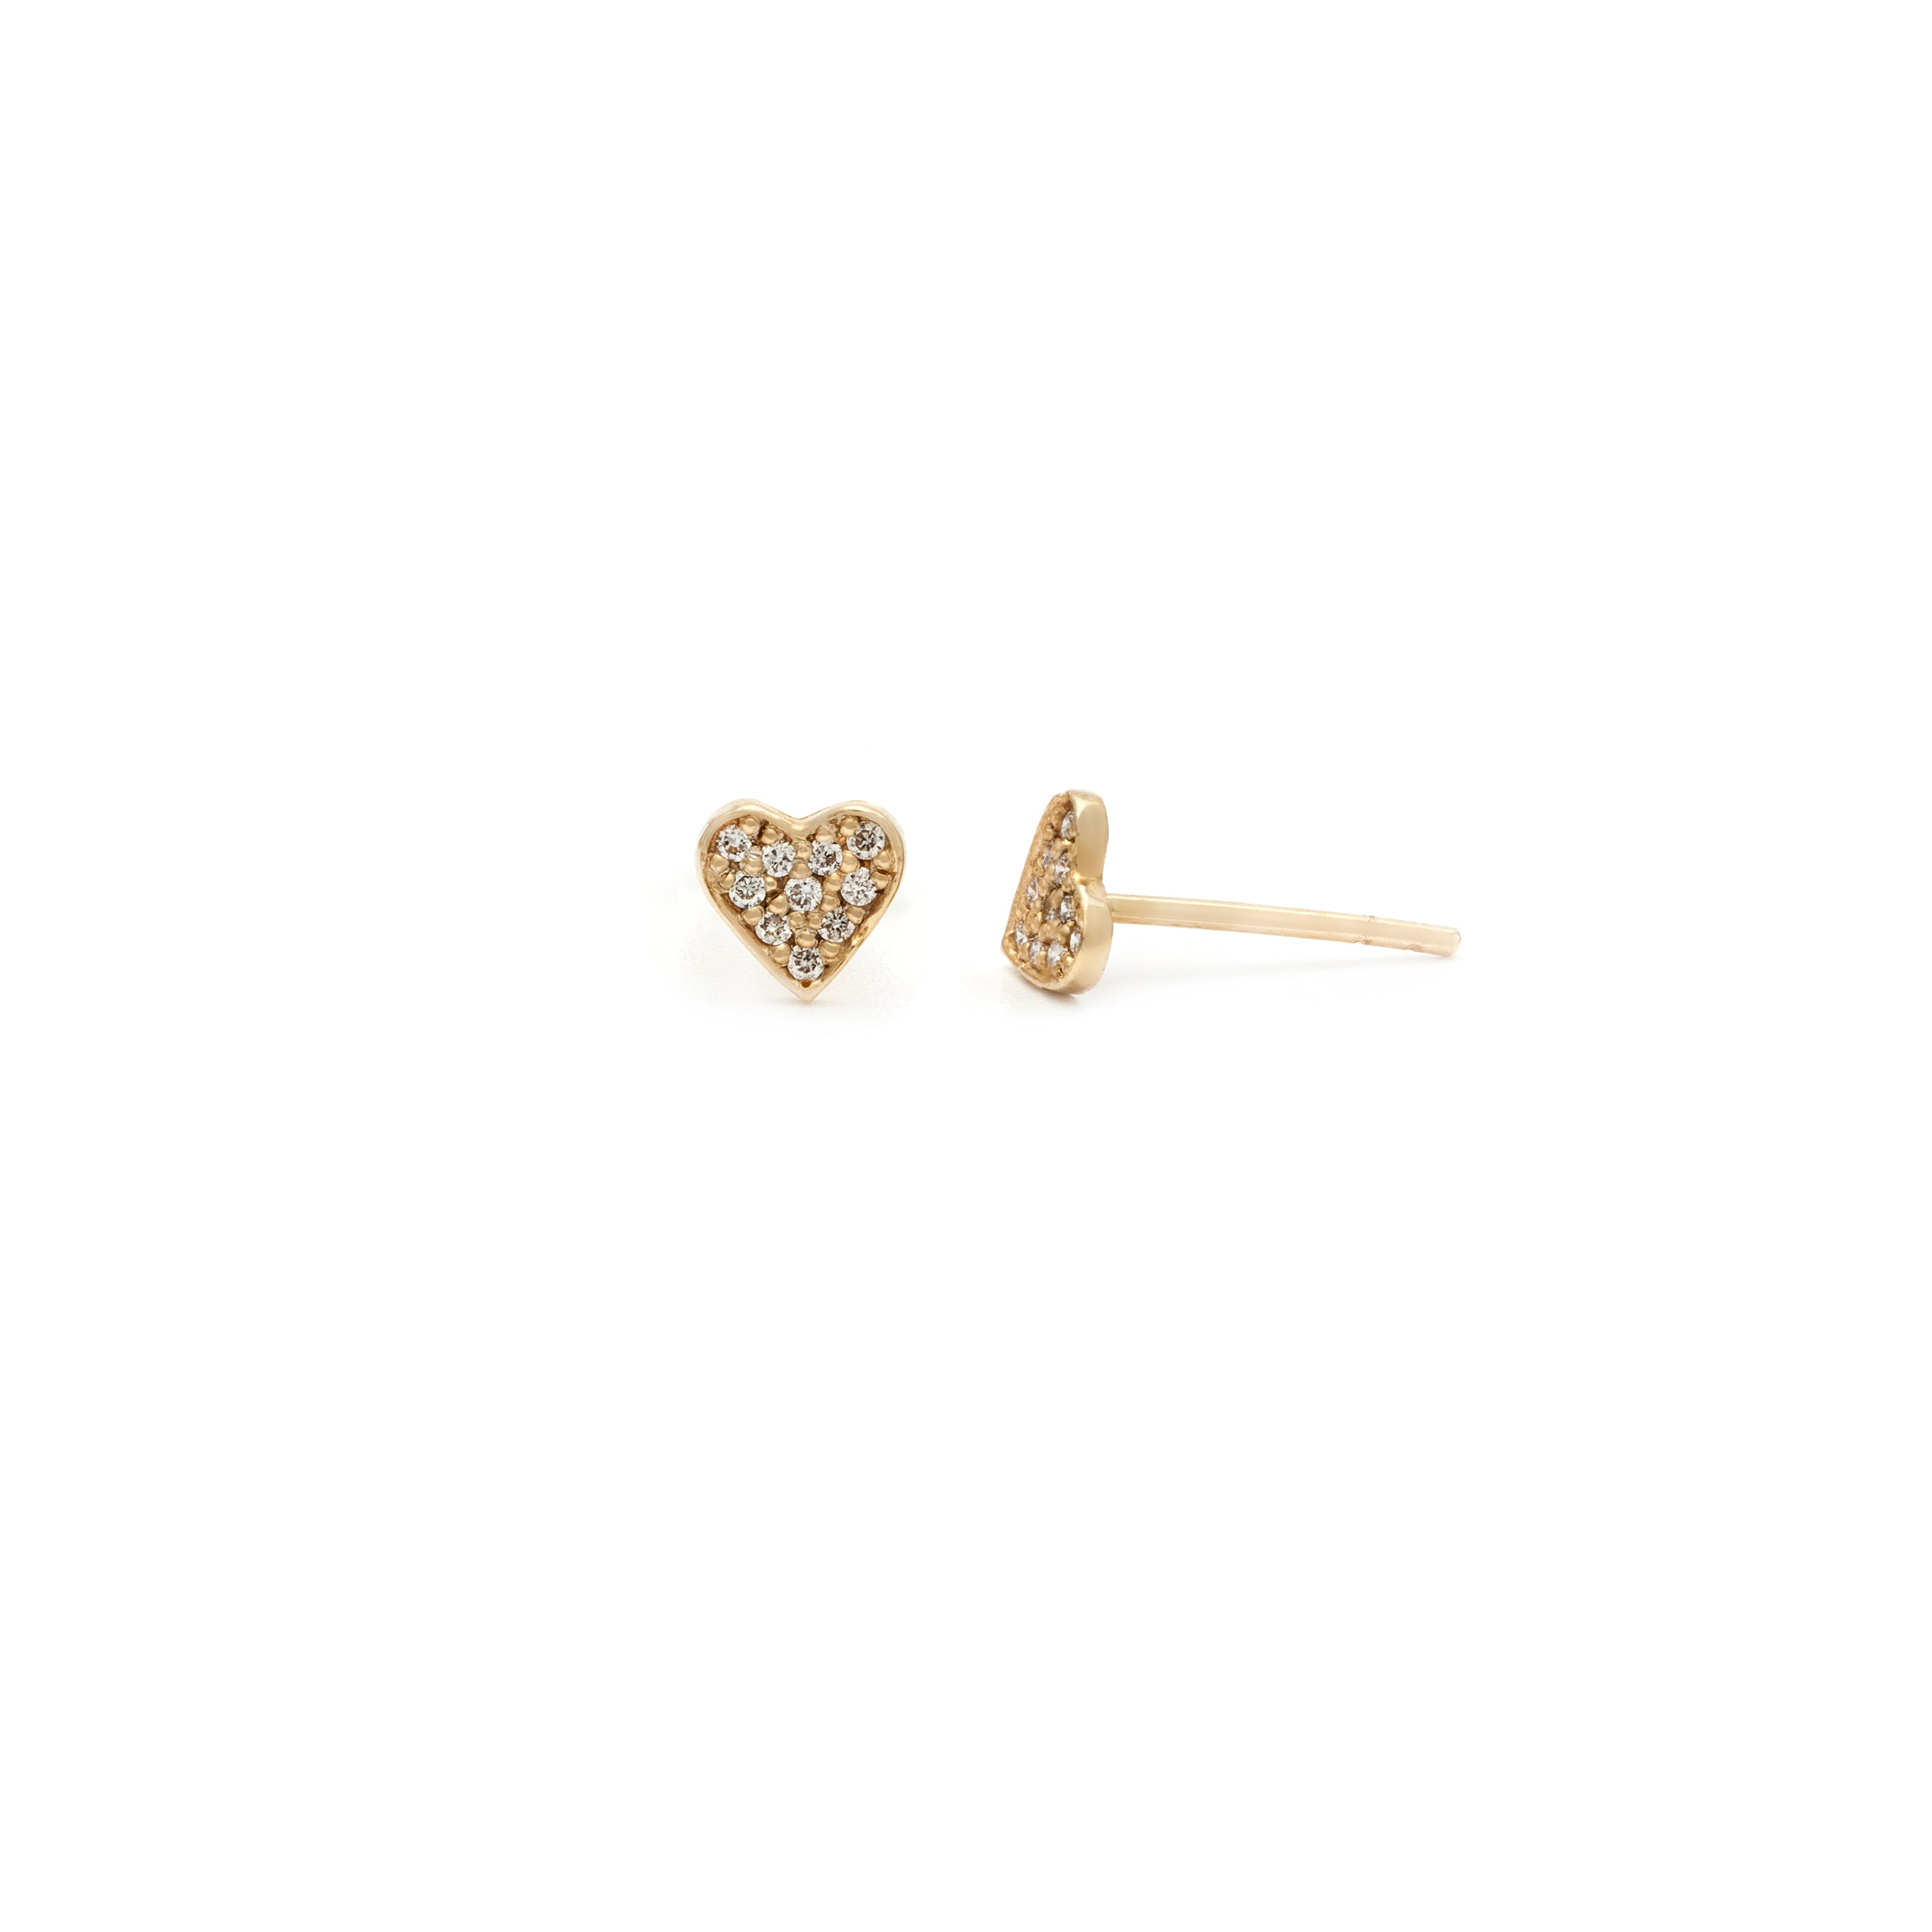 Pave Heart Studs - 10k Solid Gold